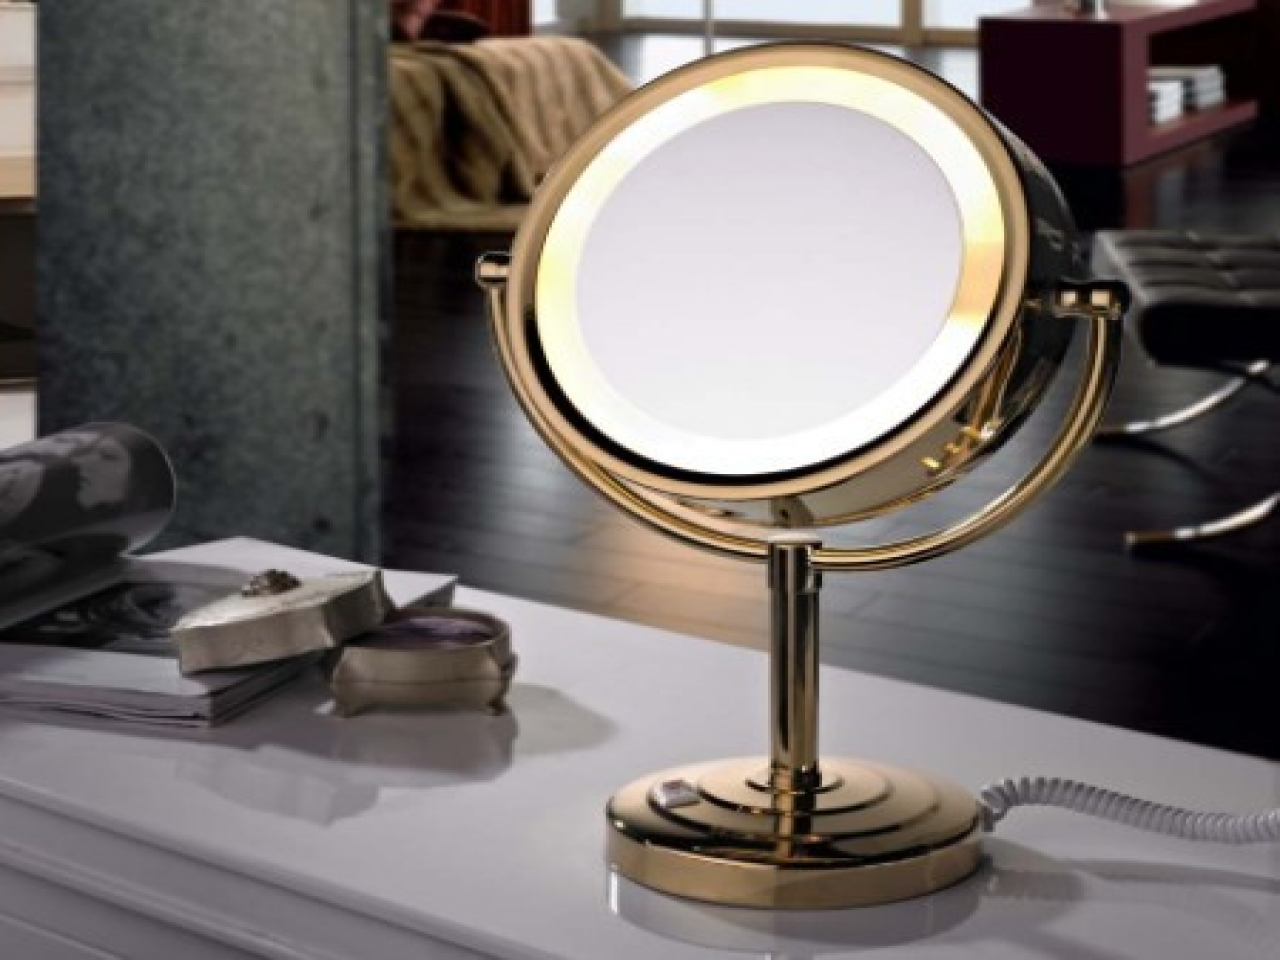 Makeup Vanity Mirror | Best Lighted Makeup Mirror | Lighted Makeup Mirror Wall Mounted